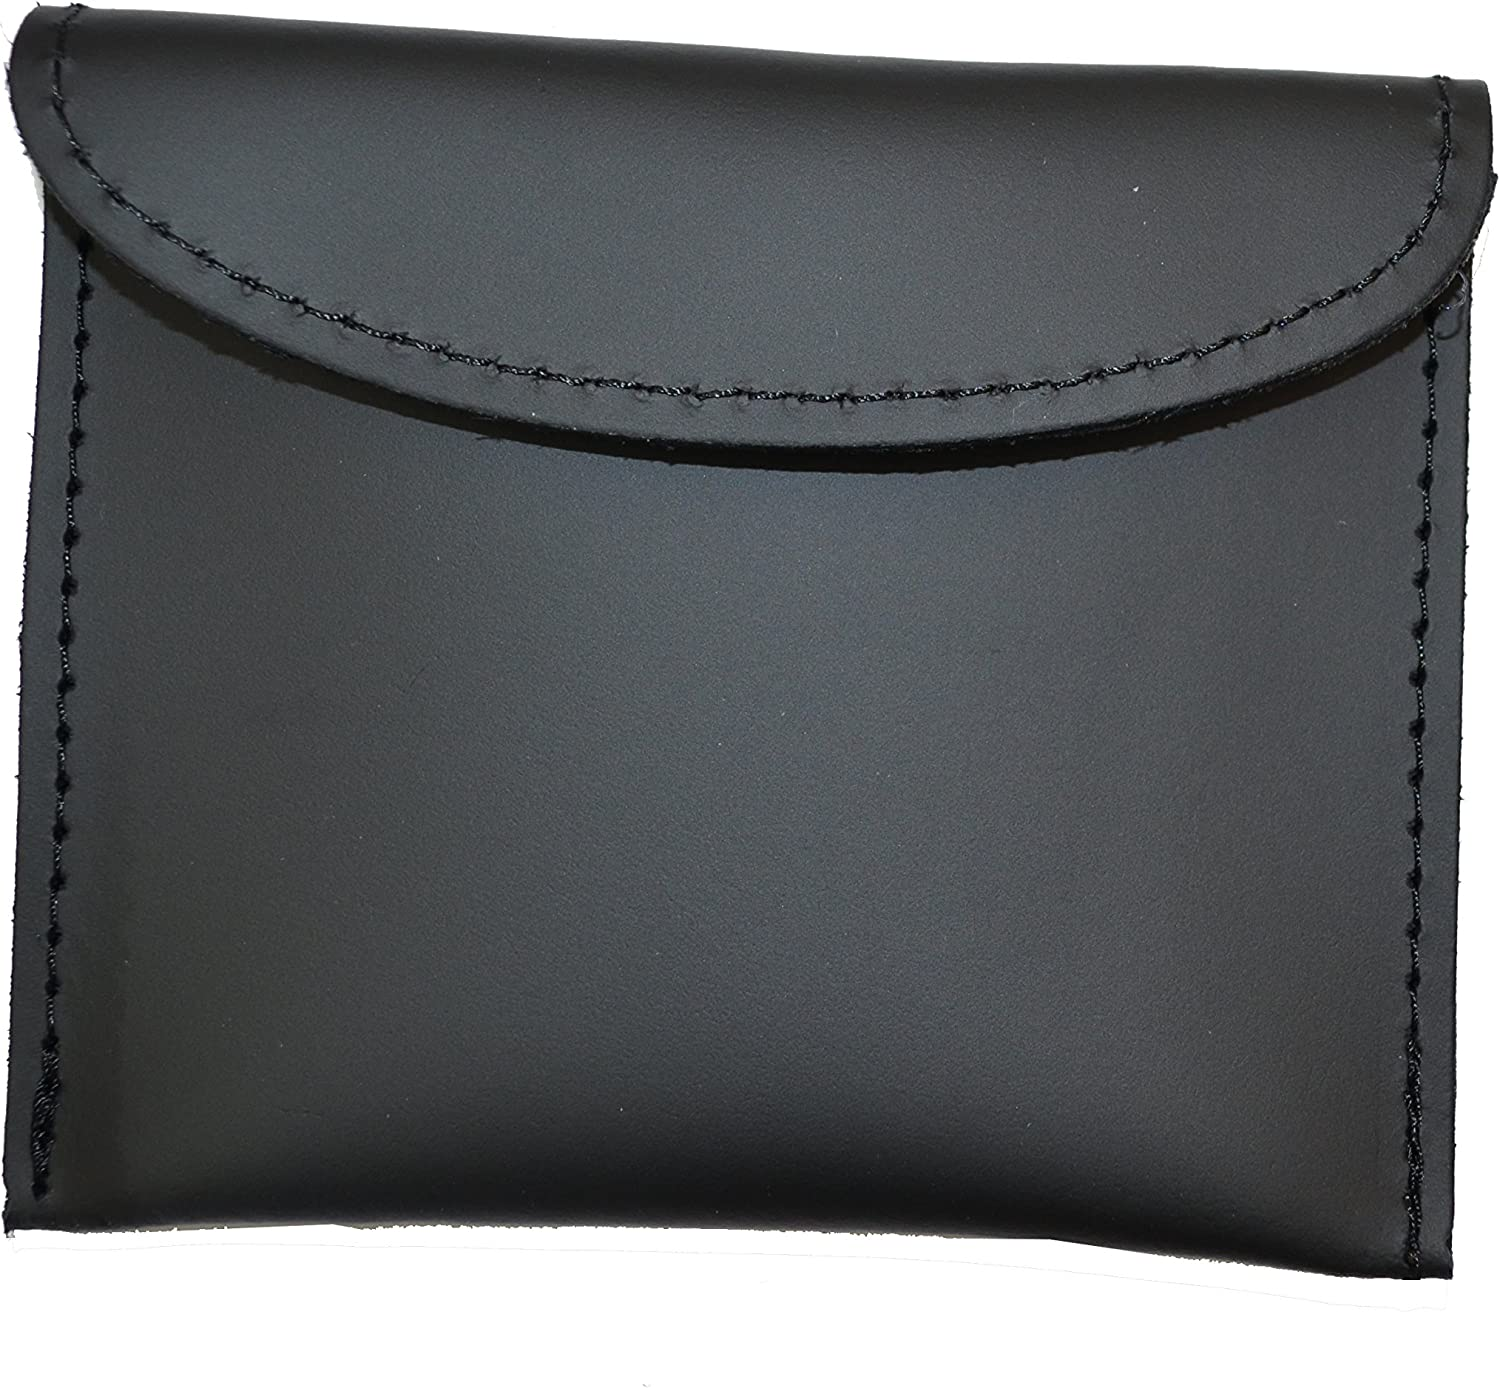 5640-1 Boston Leather Glove//mask Pouch